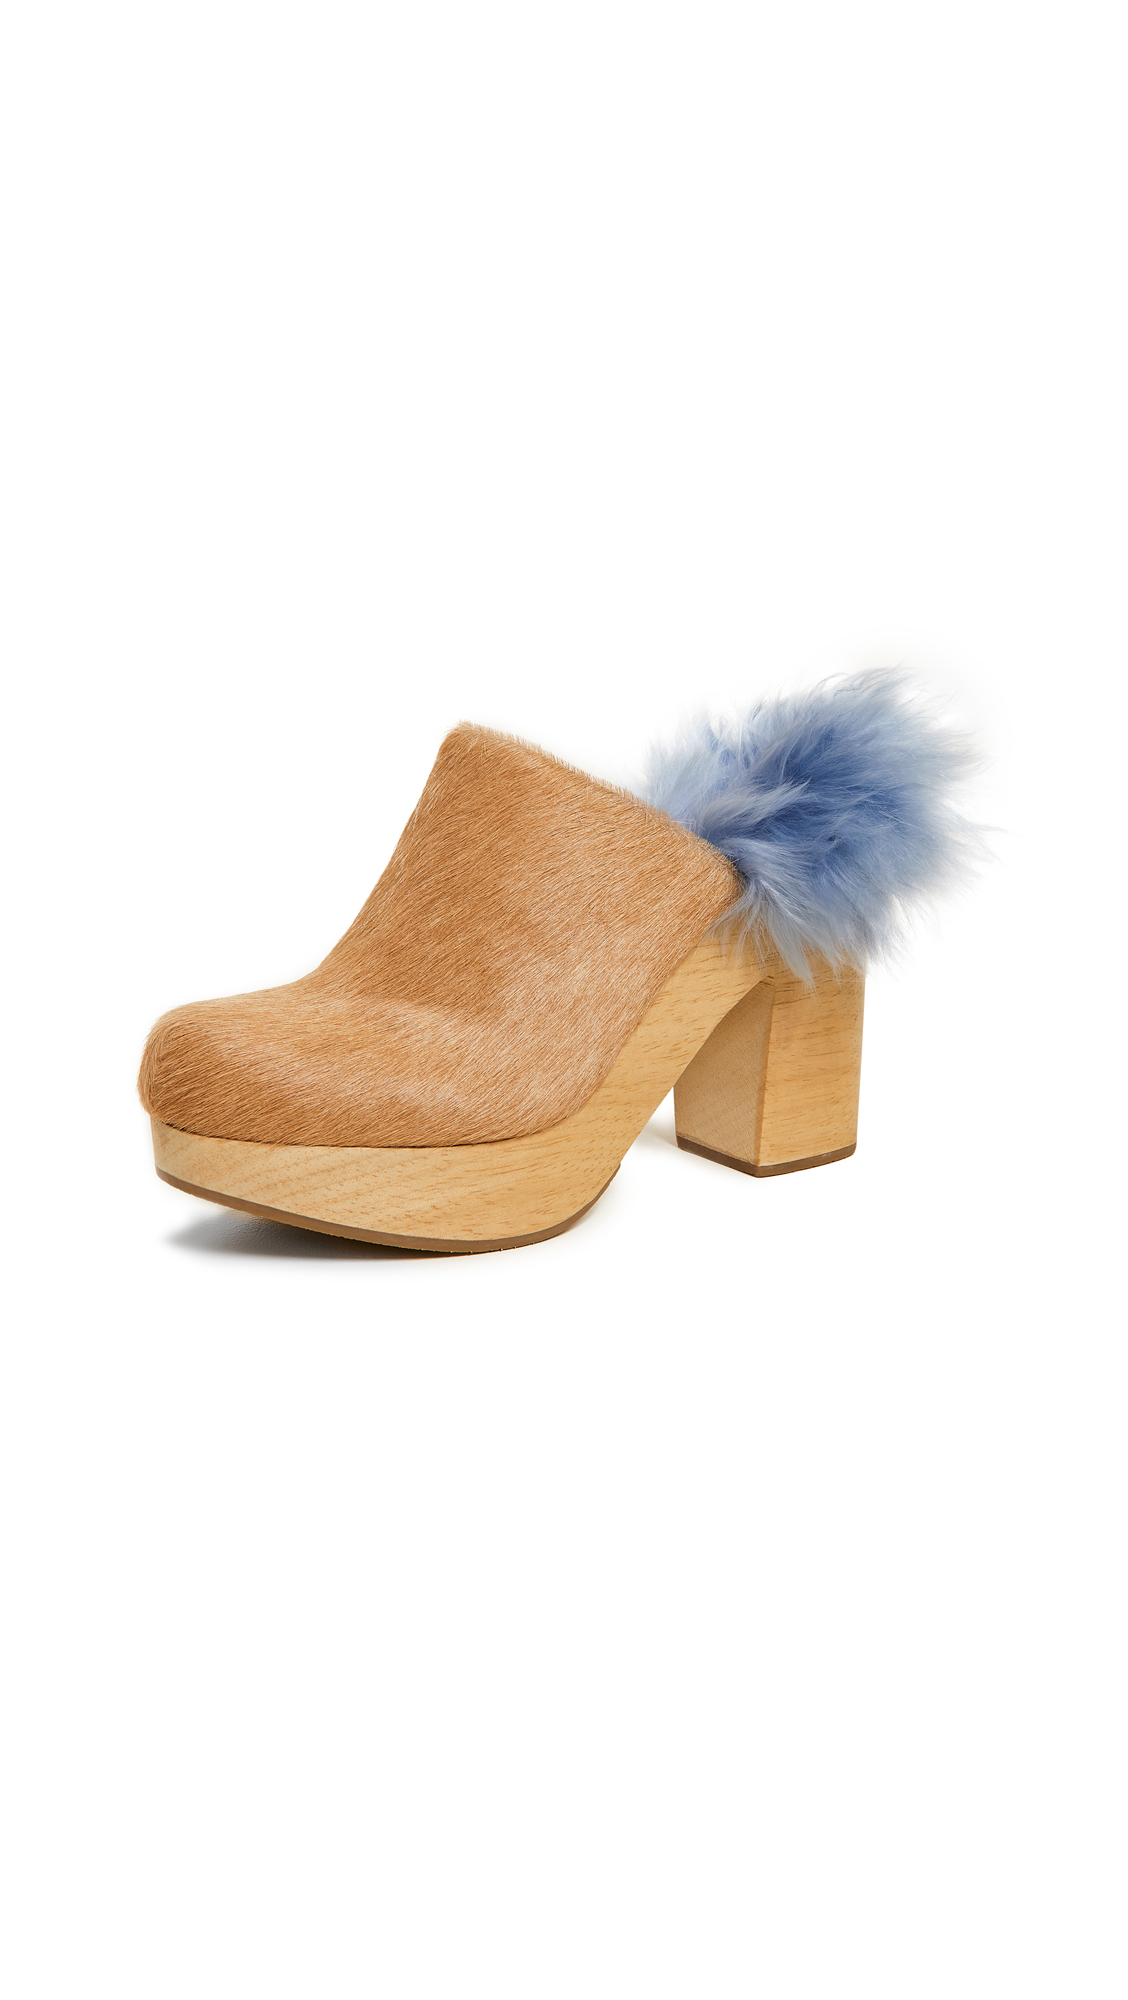 Rachel Comey Dakota Pumps - Camel